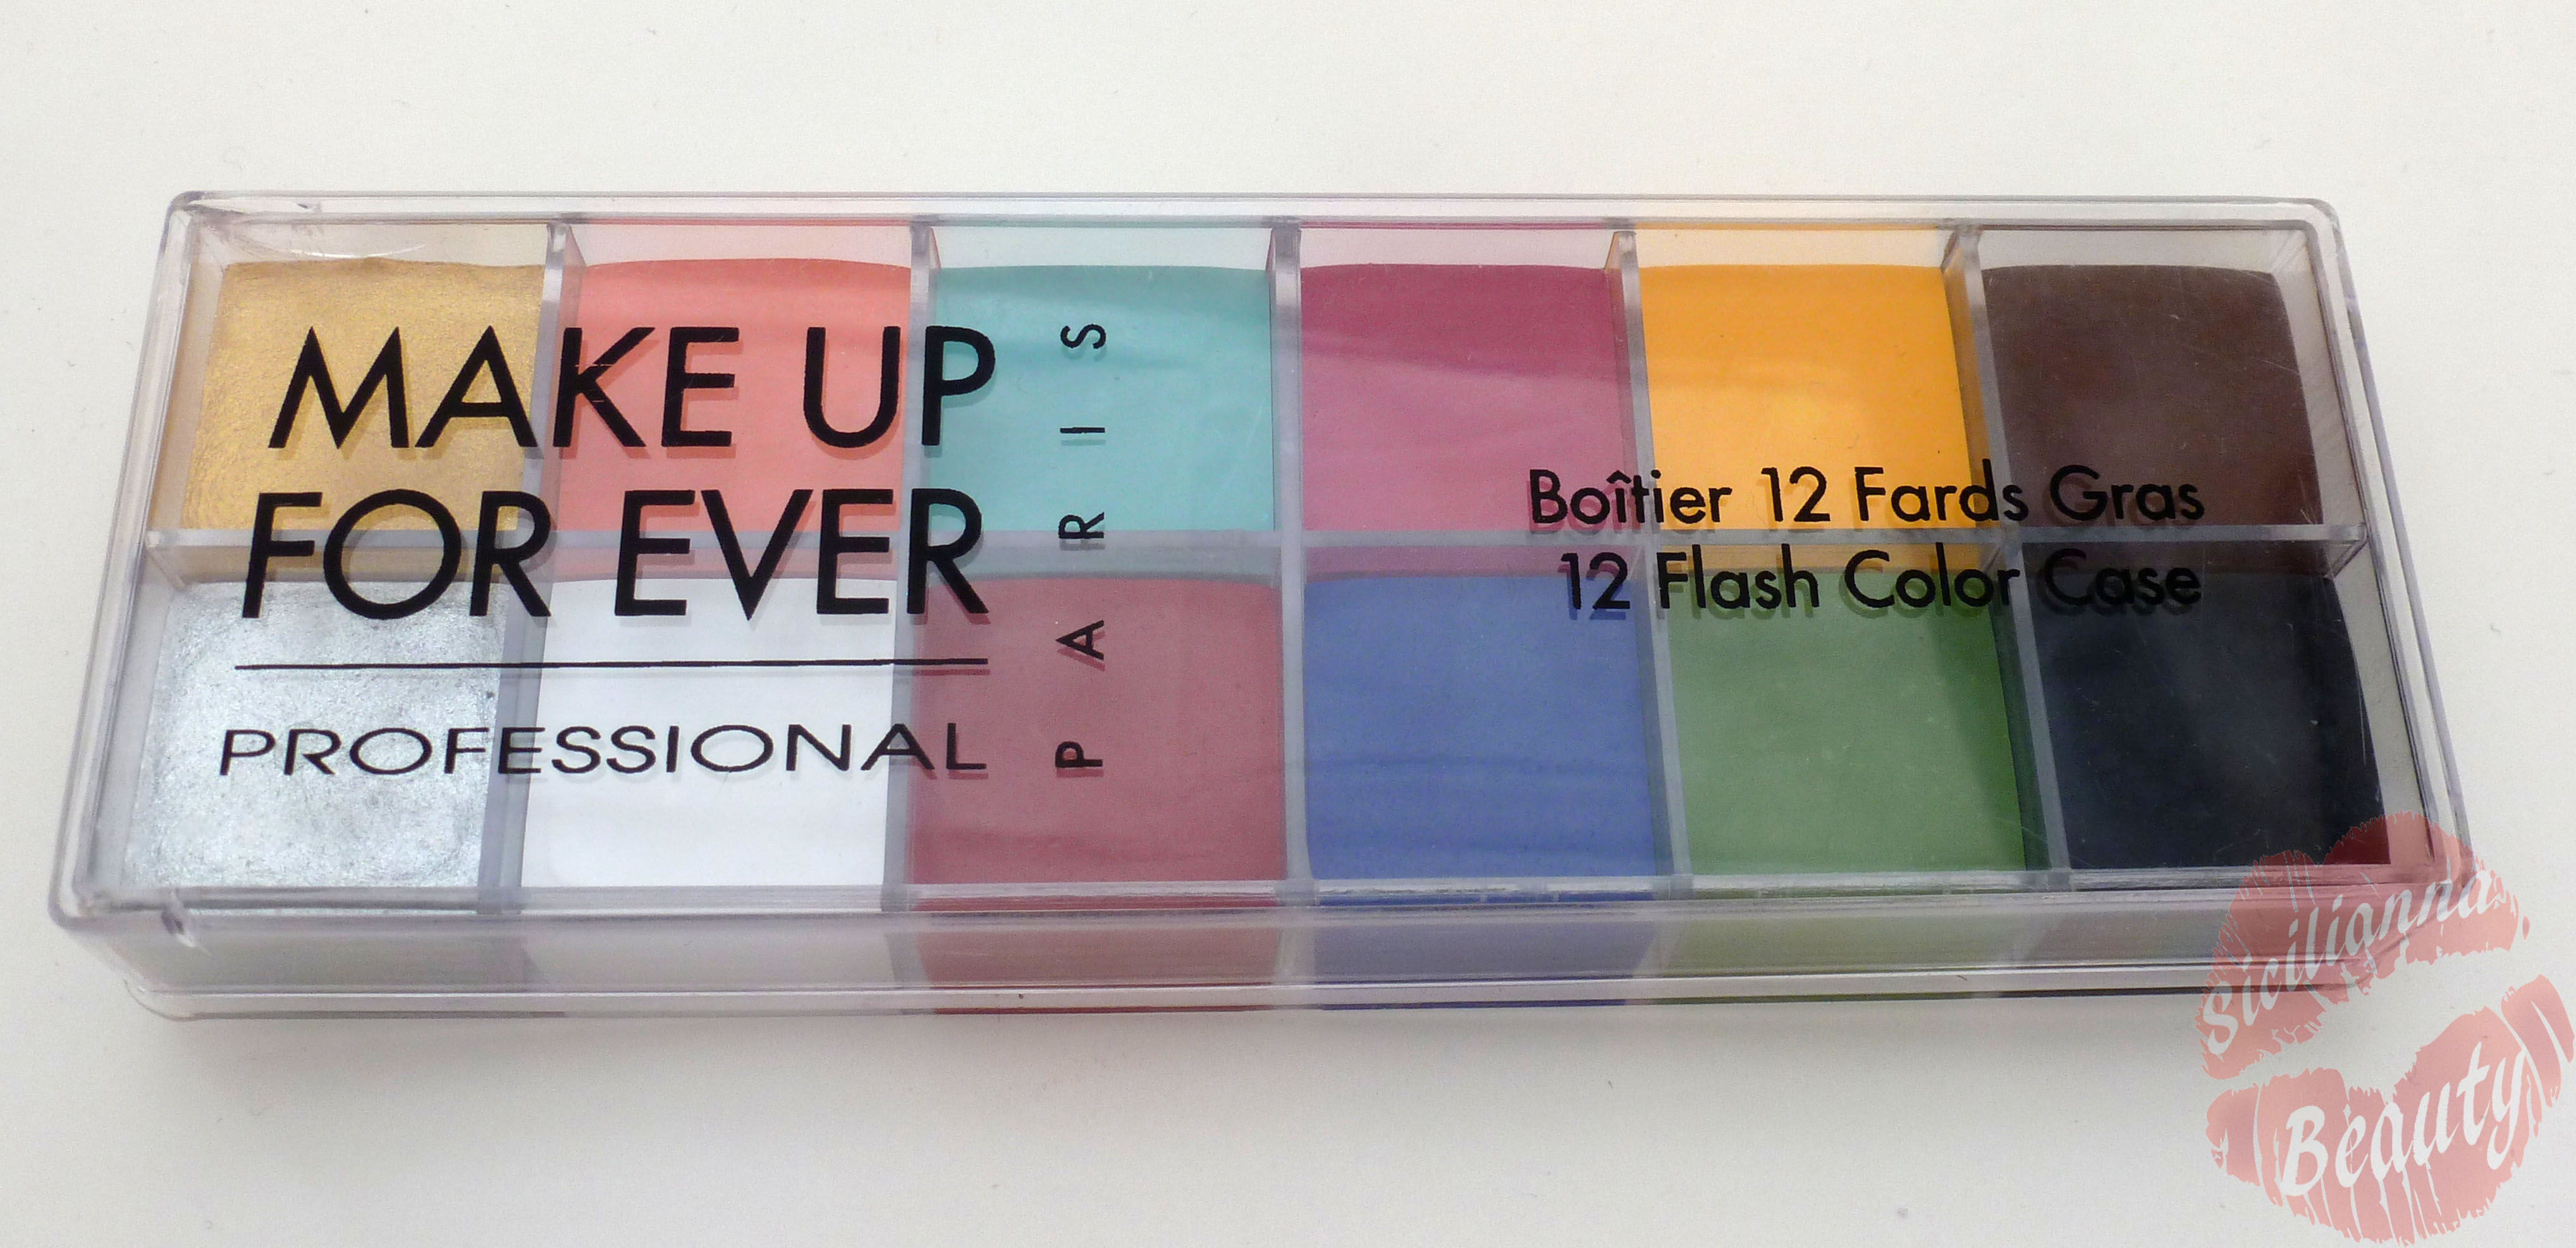 REVIEW: Makeup Forever Flash Palette